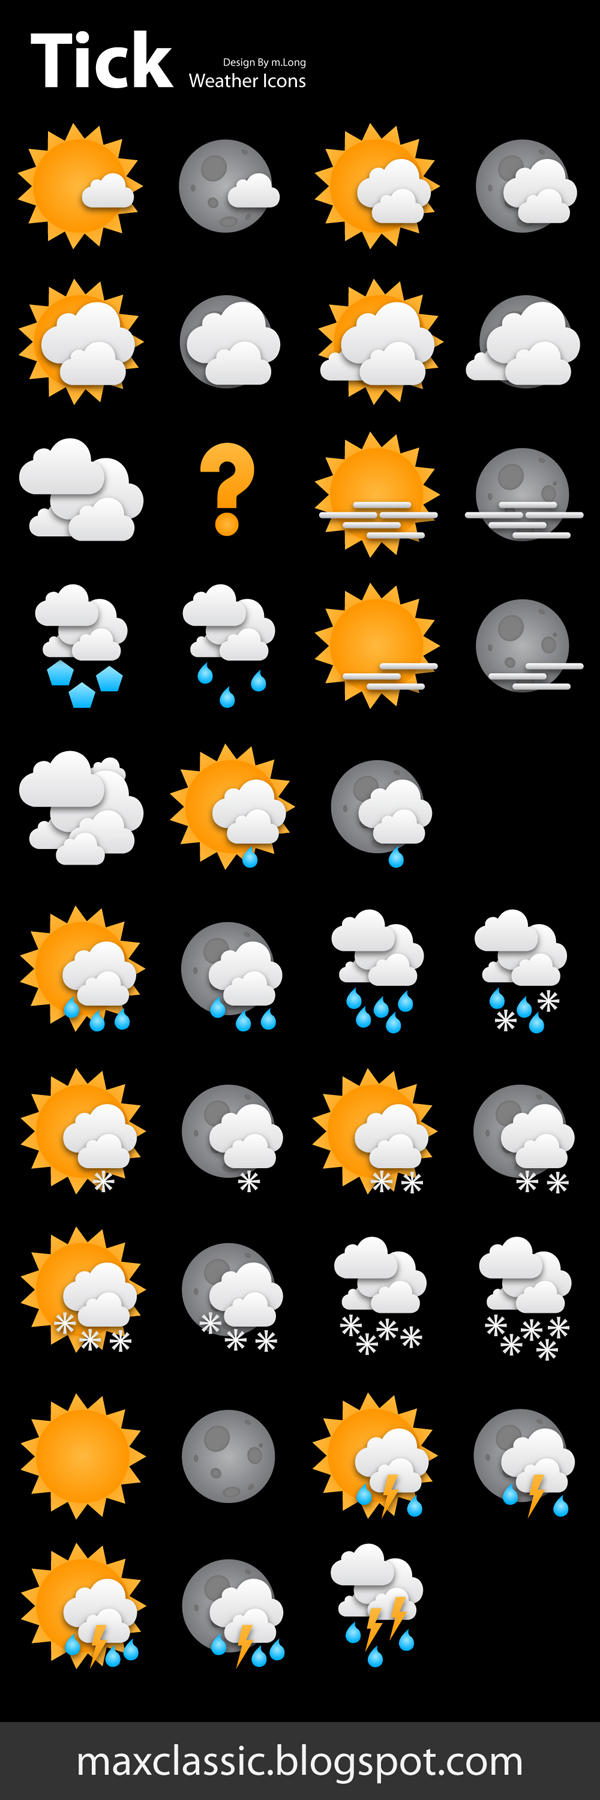 tick weather icons by xiao4